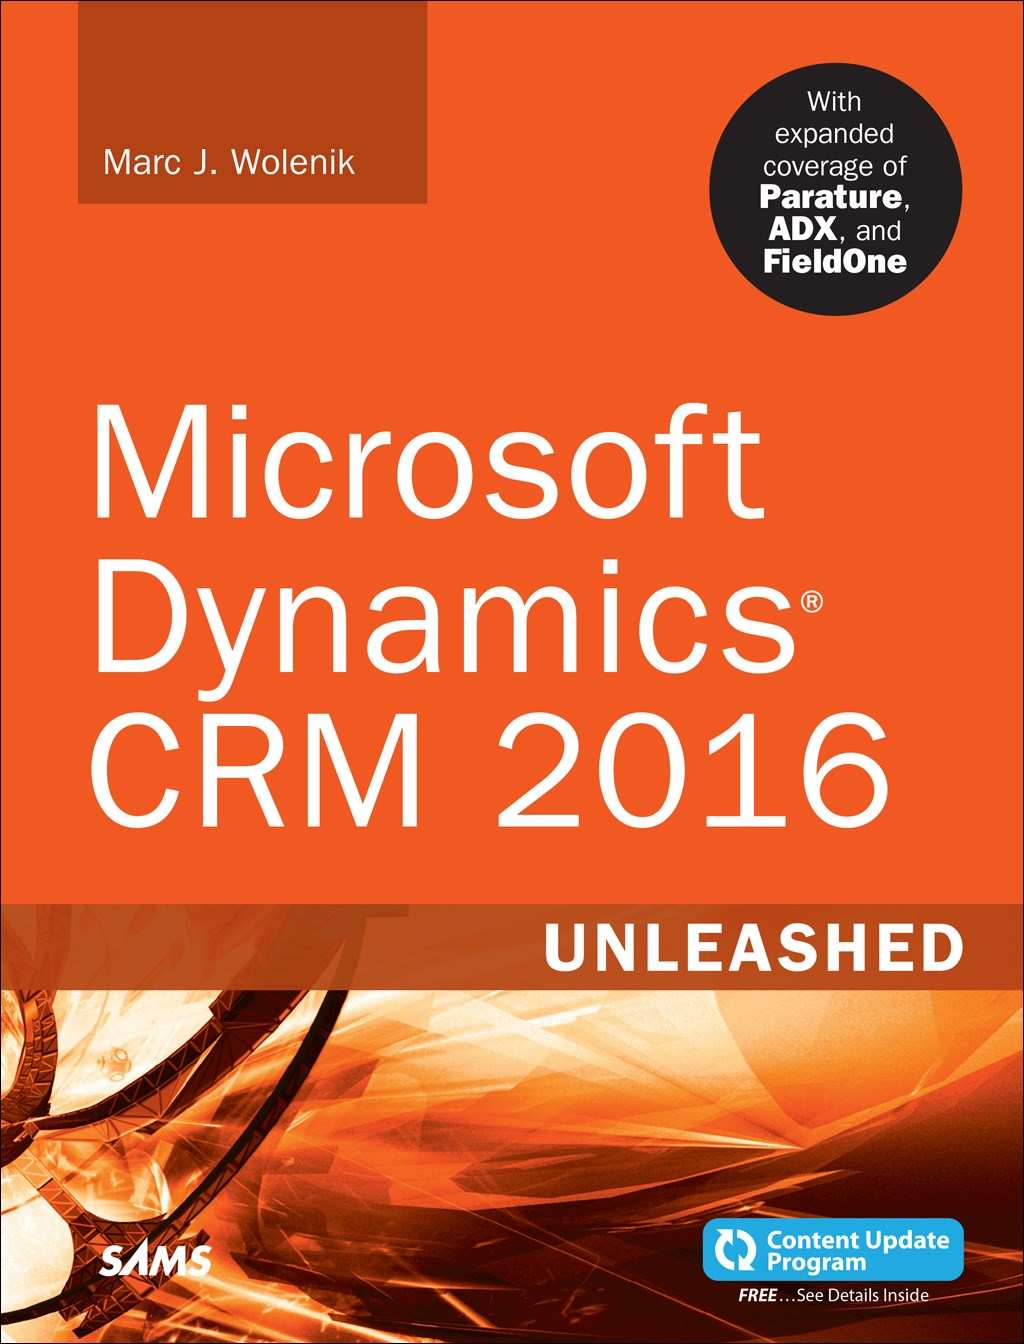 Microsoft Dynamics CRM 2016 Unleashed: With Expanded Coverage of Parature, ADX and FieldOne